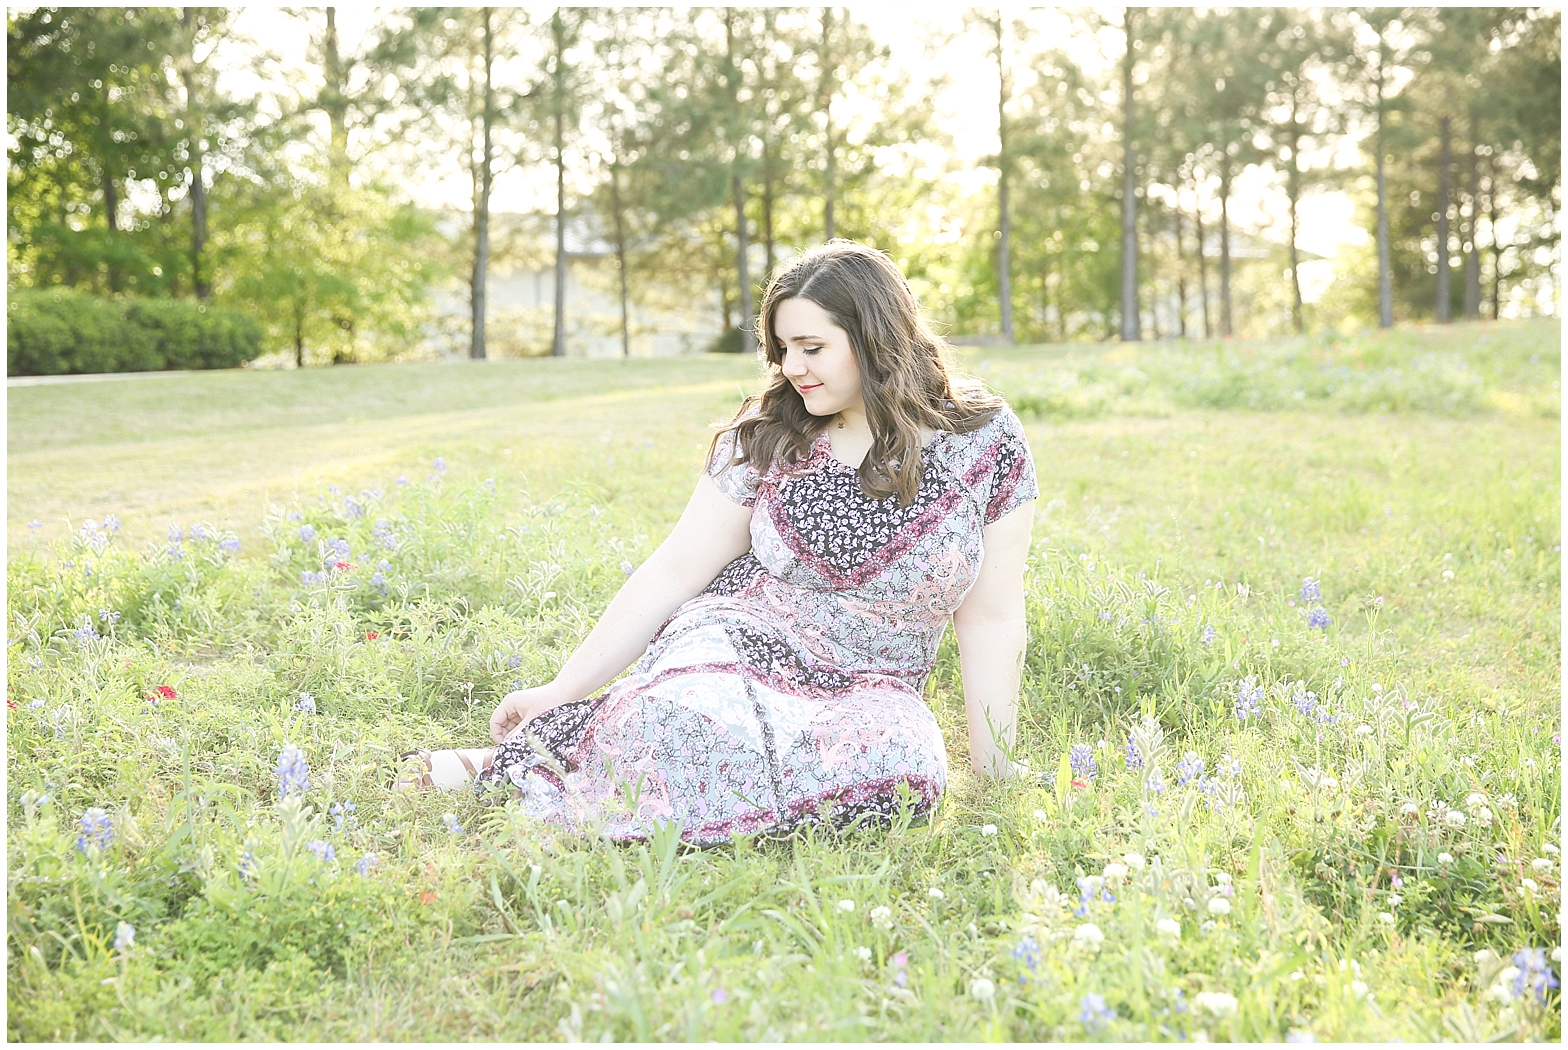 The Woodlands Senior Photography, Spring Texas Senior Photography, Tomball Senior Photography, Conroe Senior Photography, Senior Portraits